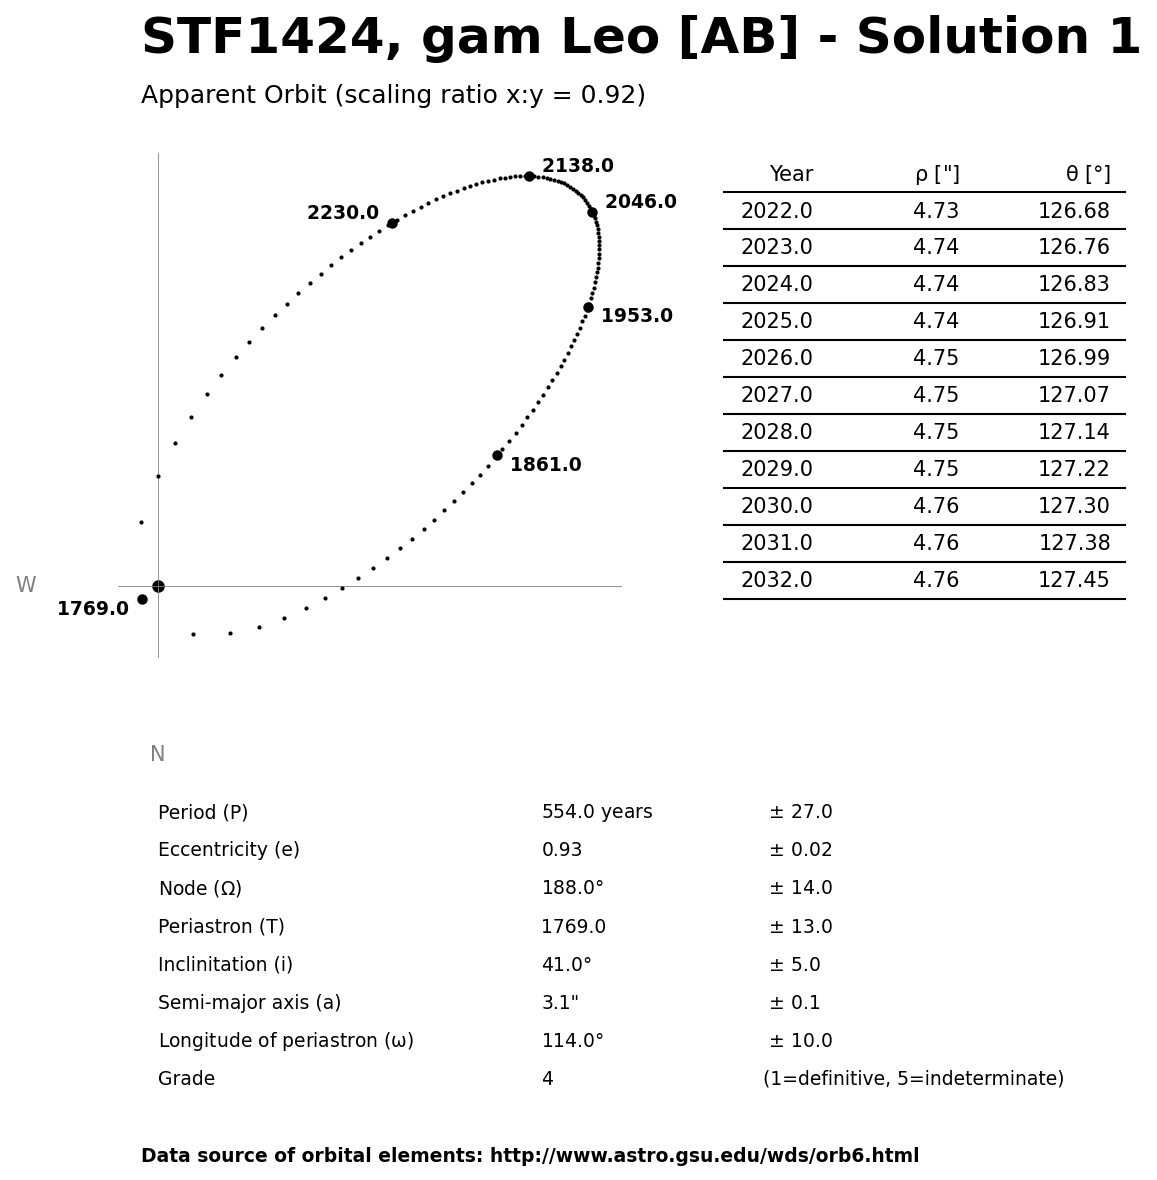 ../images/binary-star-orbits/STF1424-AB-orbit-solution-1.jpg